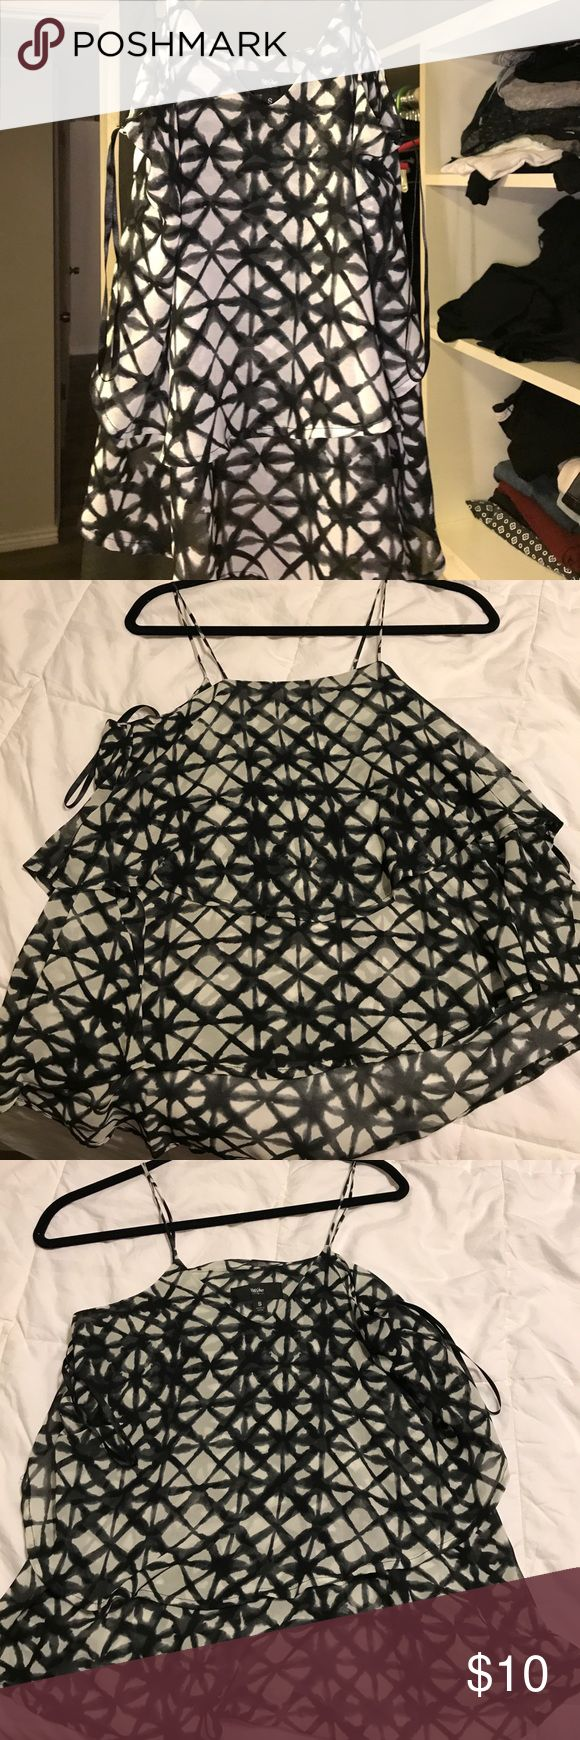 Black and white strappy top Target brand black and white strappy top. Has a top and bottom layer of fabric. Looks great with shorts or jeans. Never worn but tags have been removed! Mossimo Supply Co. Tops Tank Tops